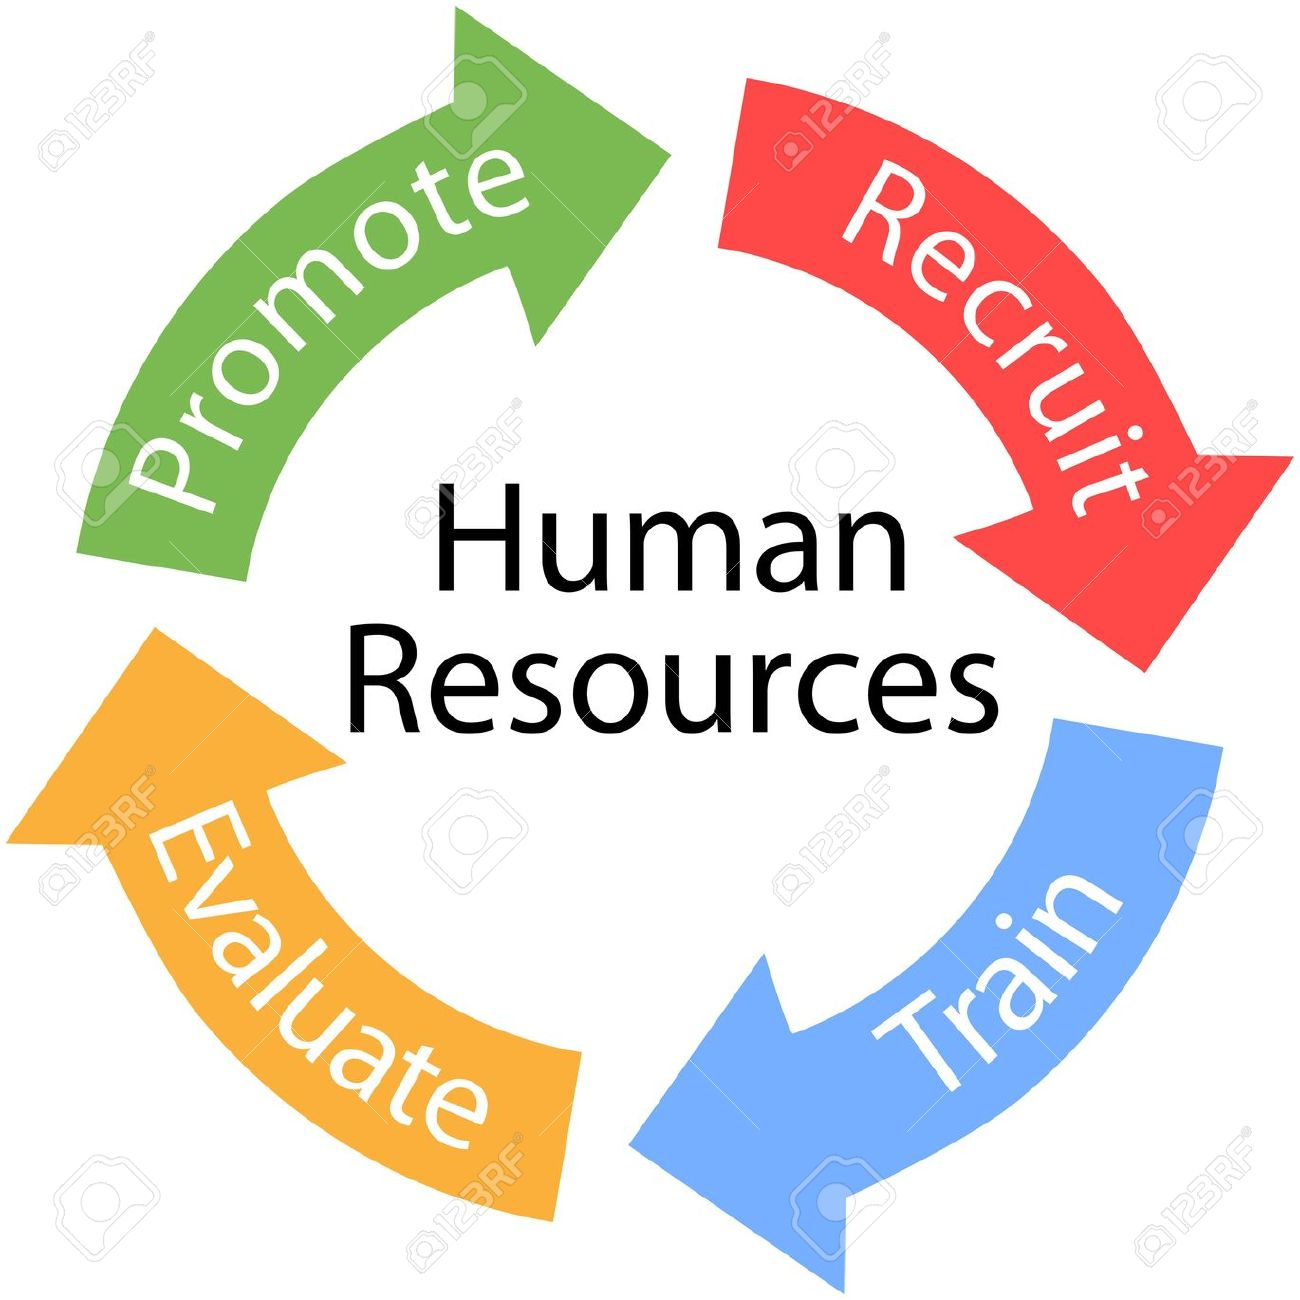 Human Resources Clip Art-human resources clip art-7